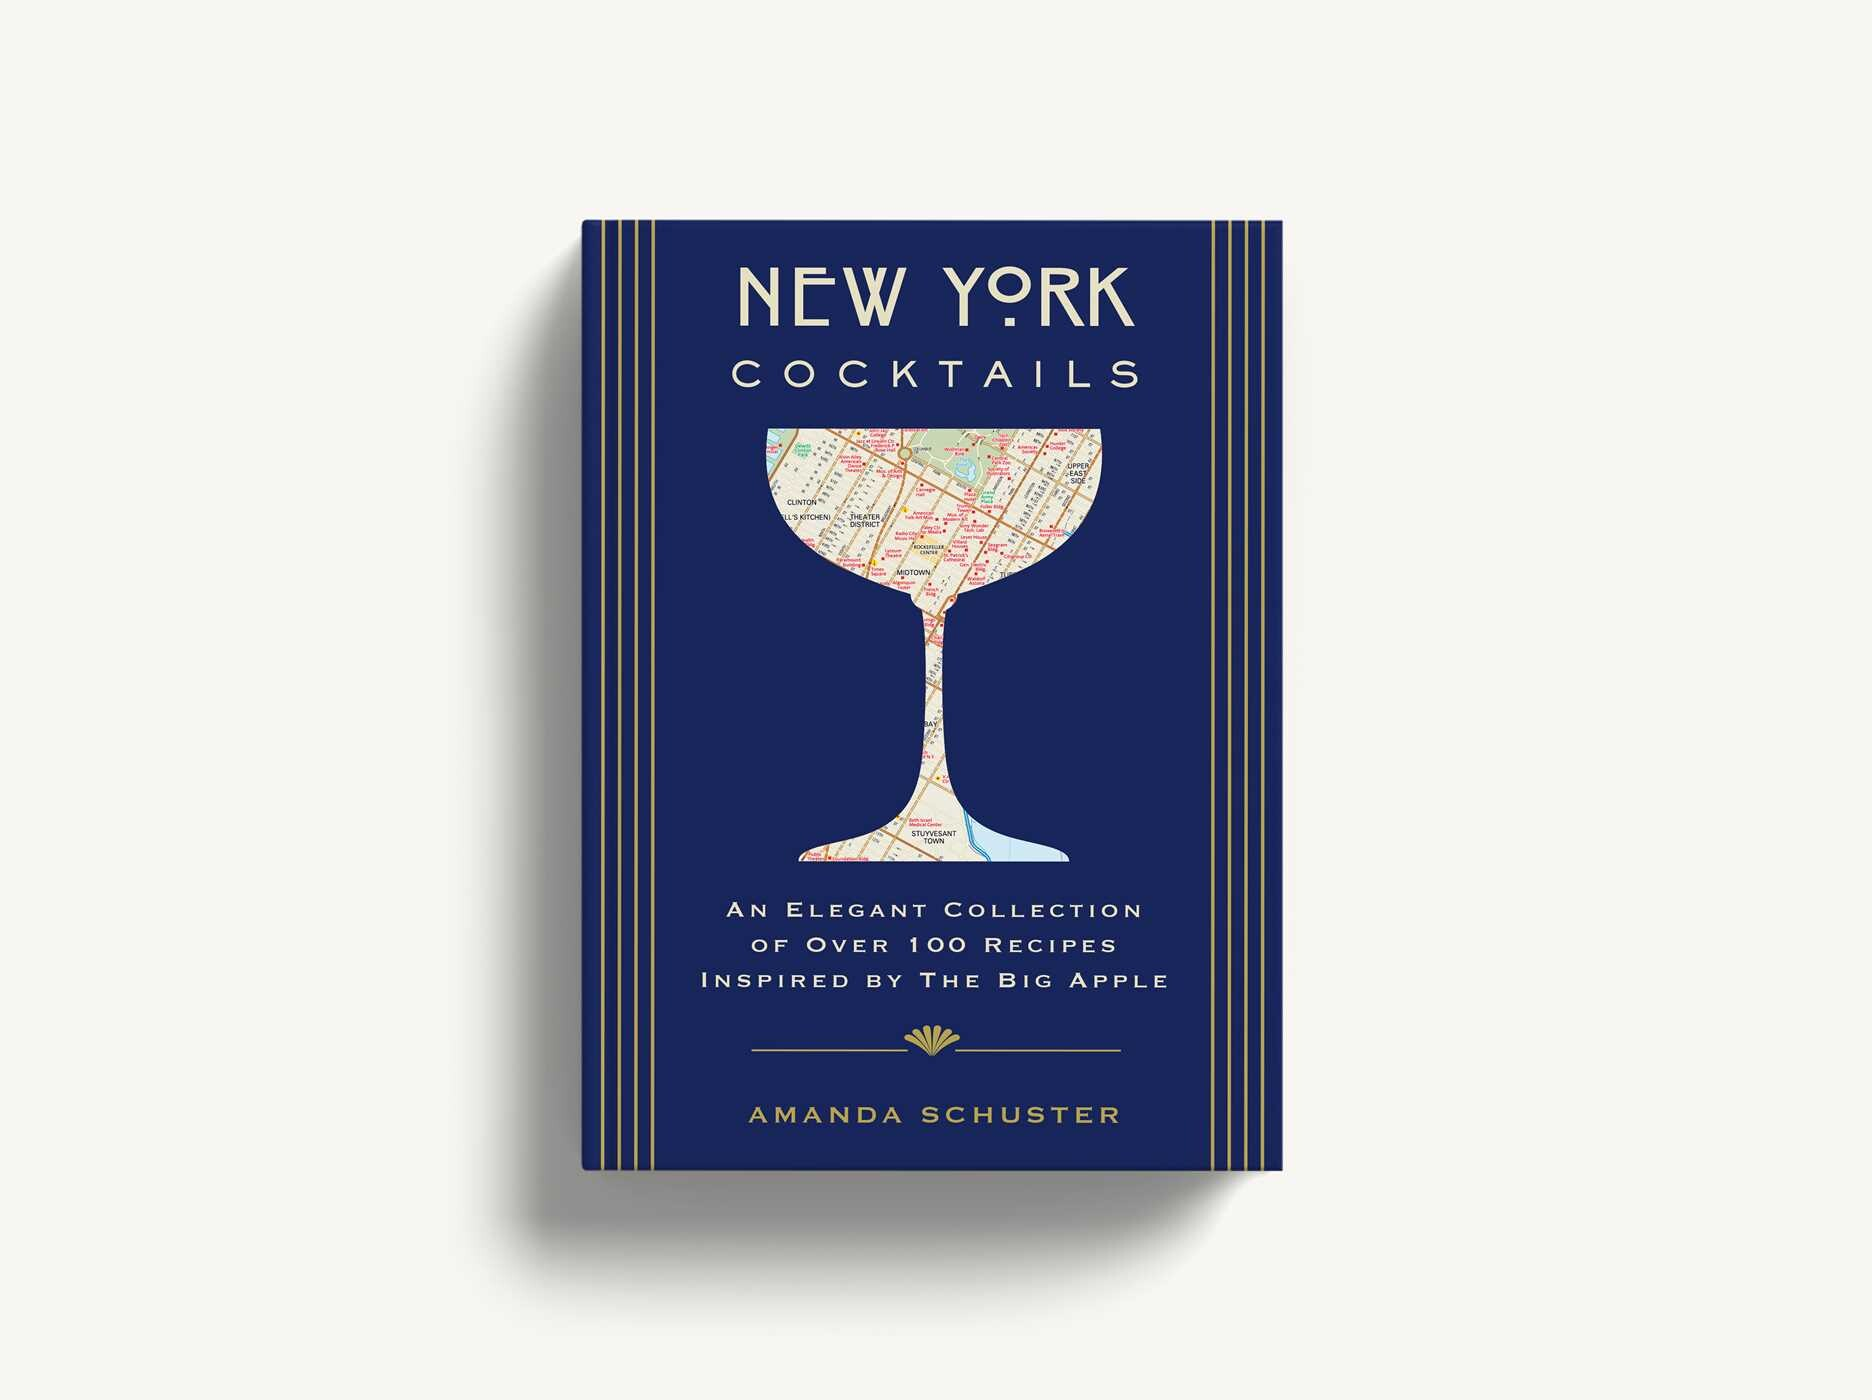 New york cocktails 9781604337297.in01